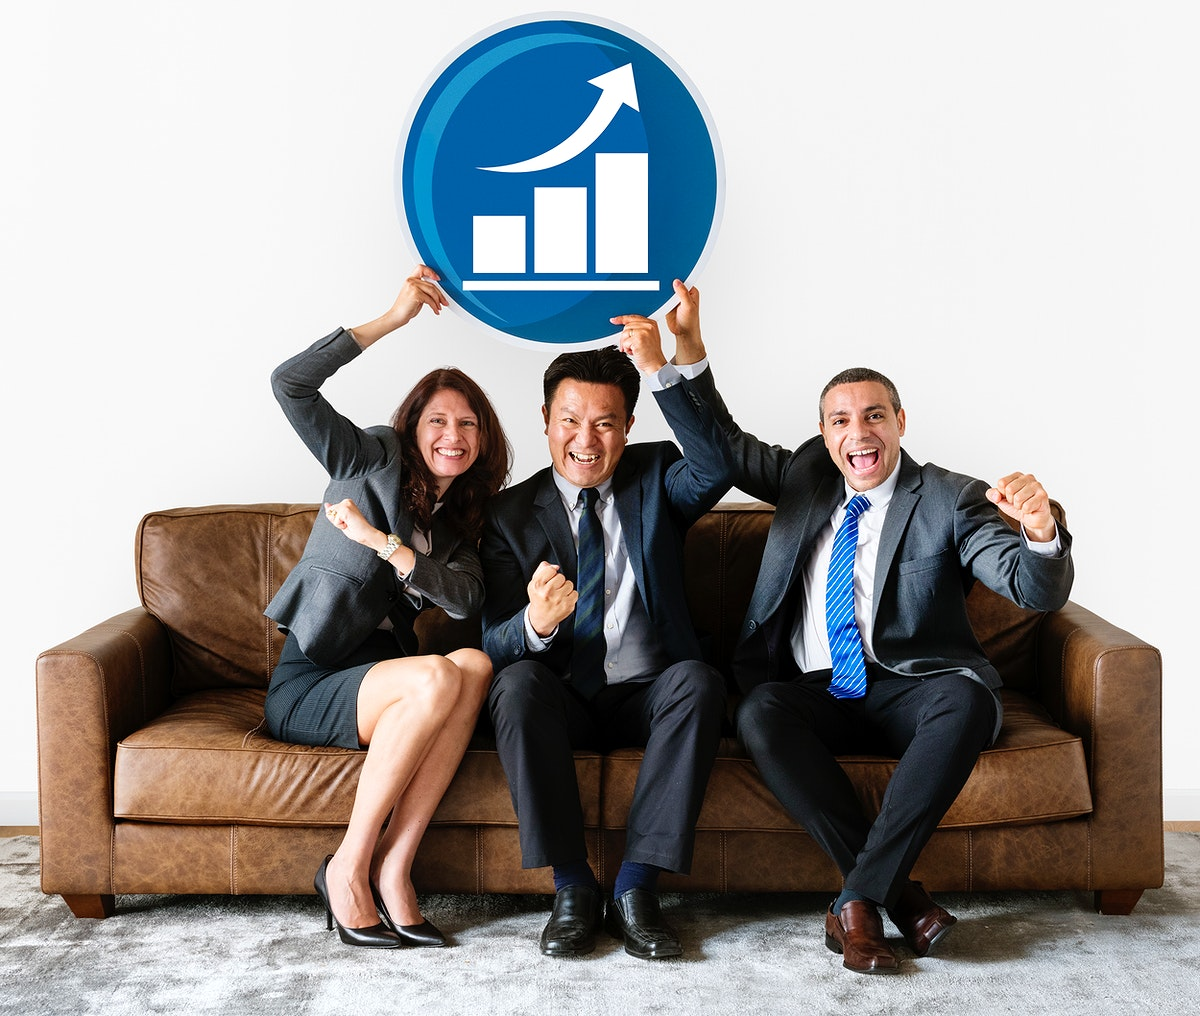 Business people holding graph icon